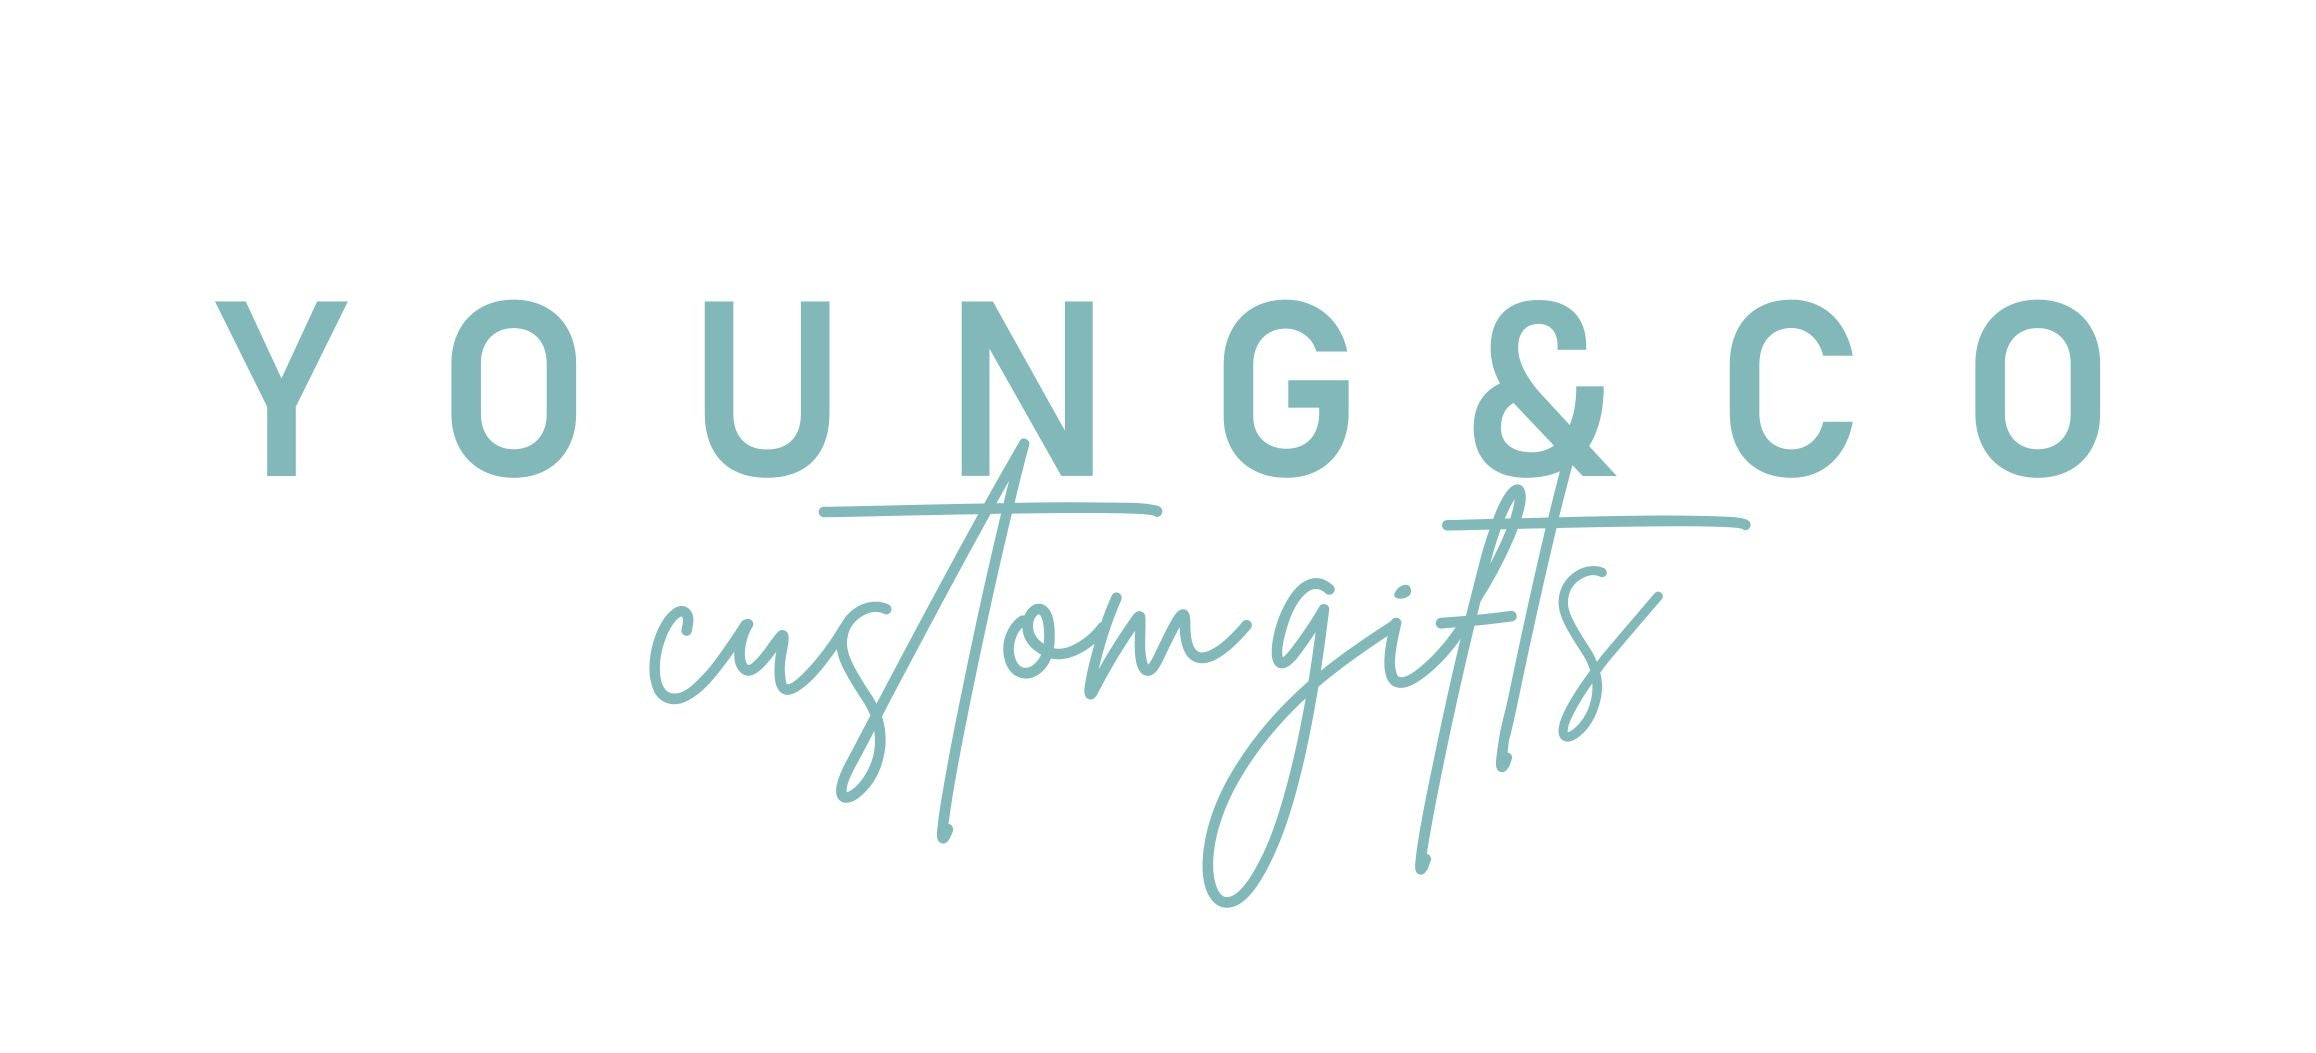 Young & Co Custom Gifts